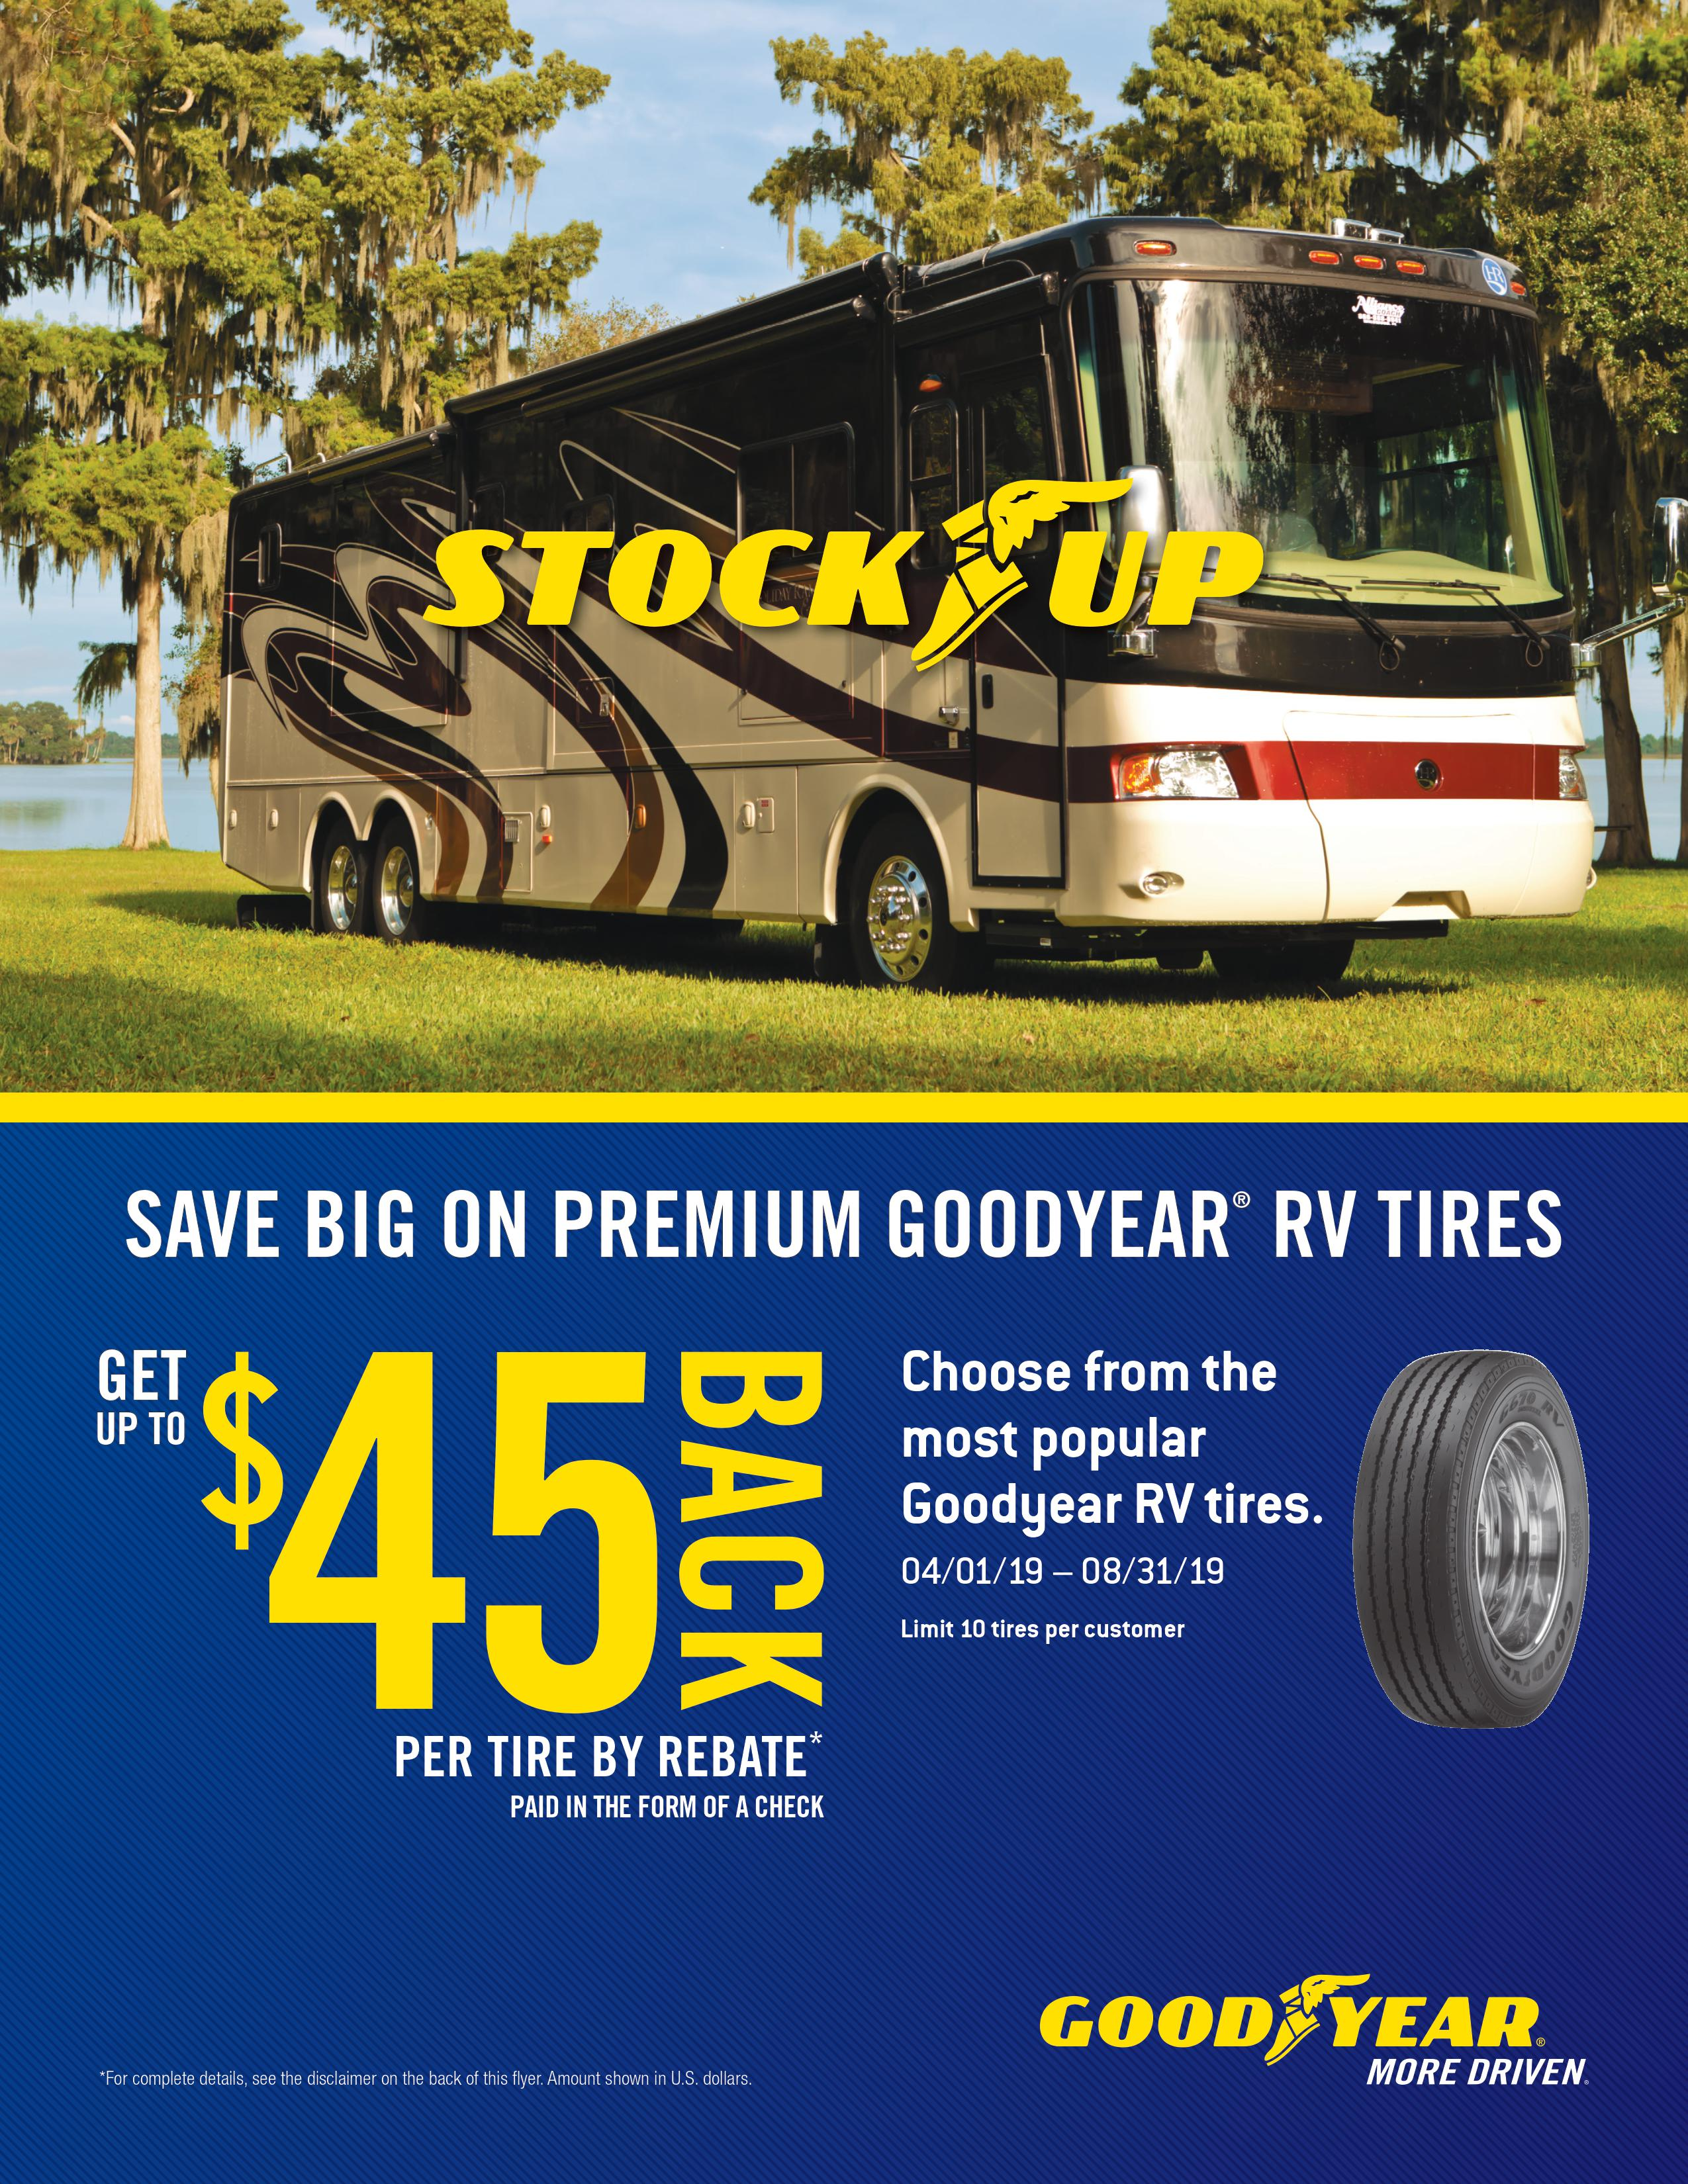 Save Big on Premium Goodyear RV Tires